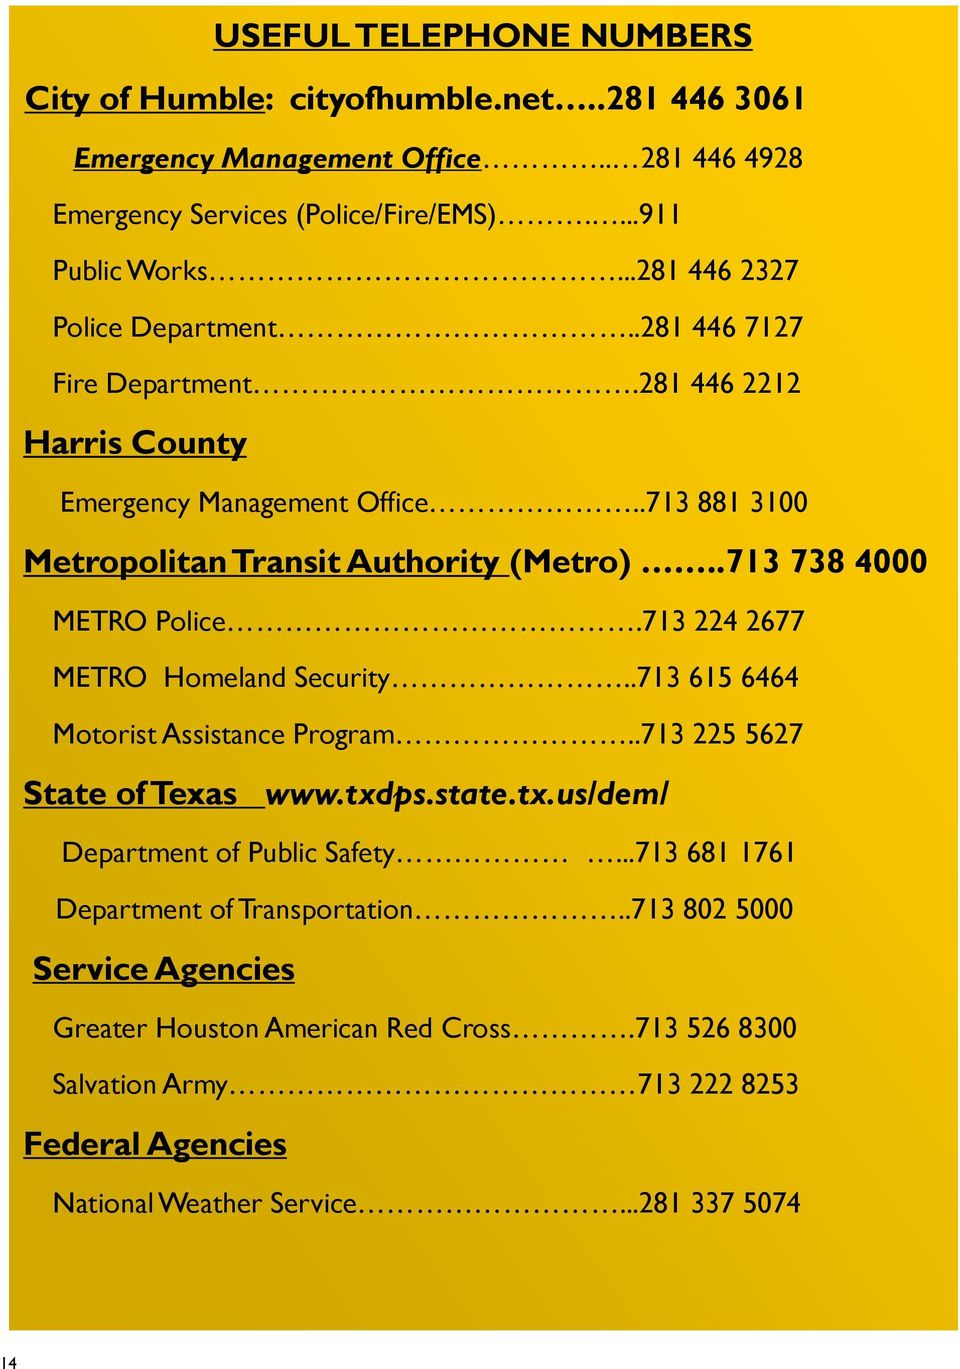 .713 738 4000 METRO Police.713 224 2677 METRO Homeland Security..713 615 6464 Motorist Assistance Program..713 225 5627 State of Texas www.txdps.state.tx.us/dem/ Department of Public Safety.